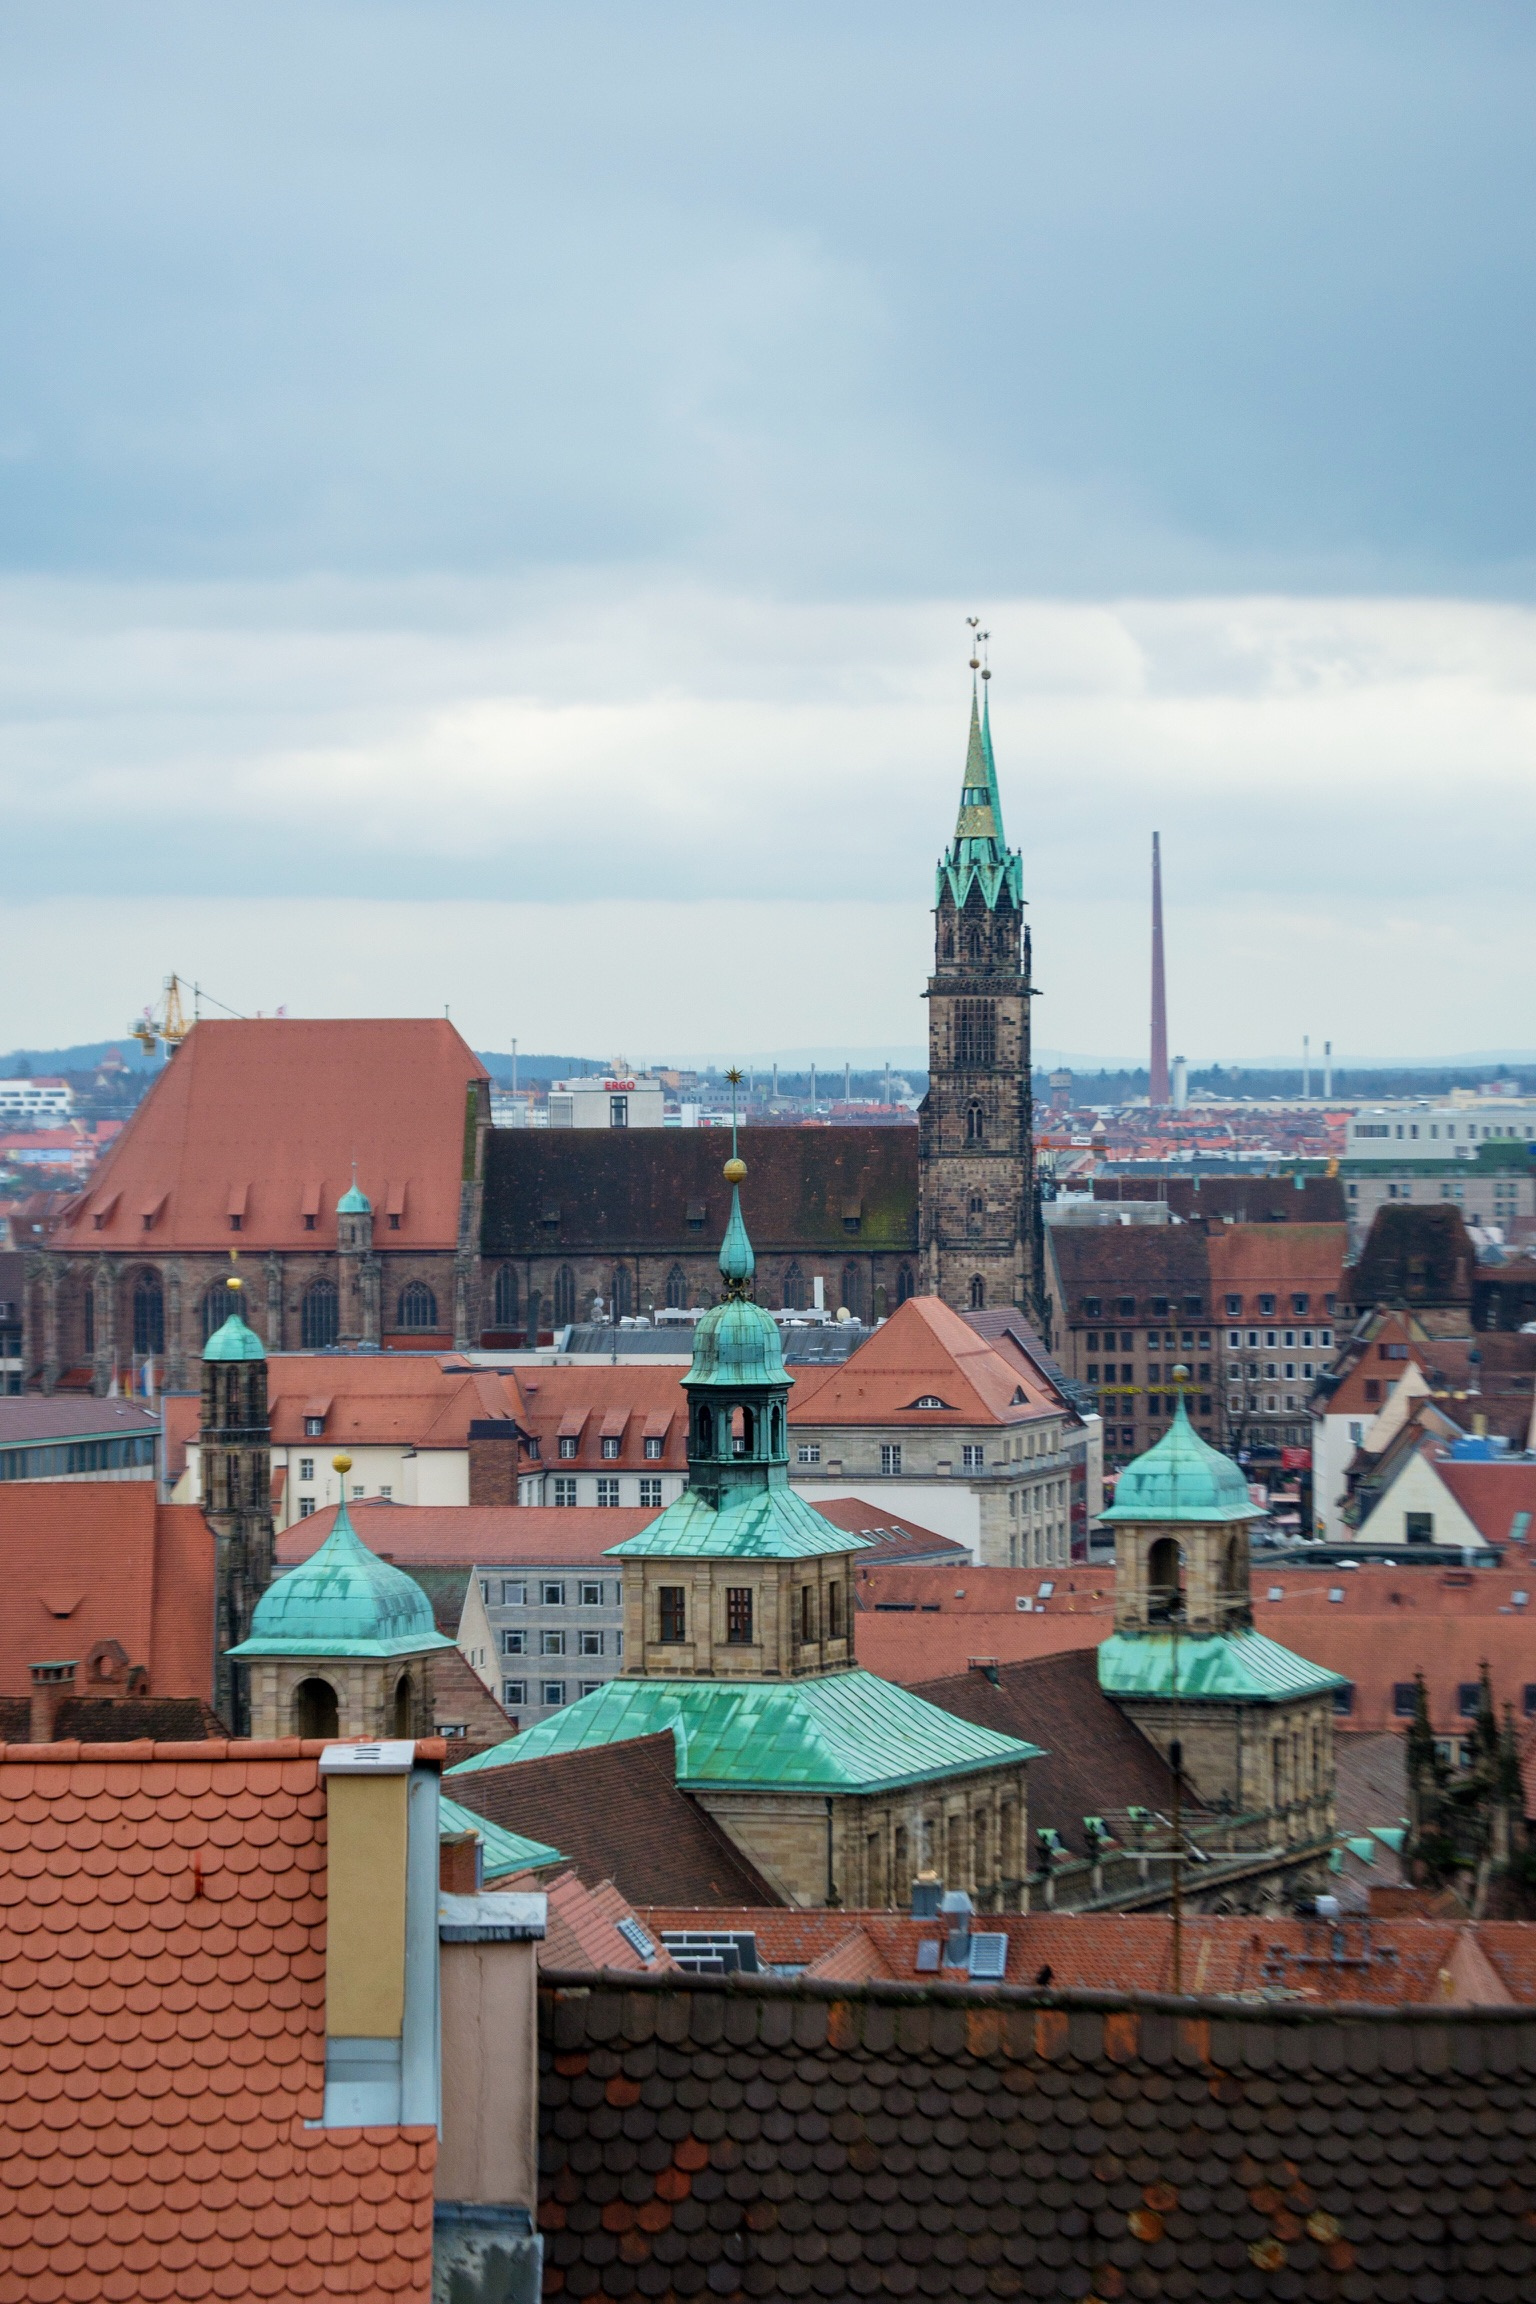 Rooftops of Nuremberg